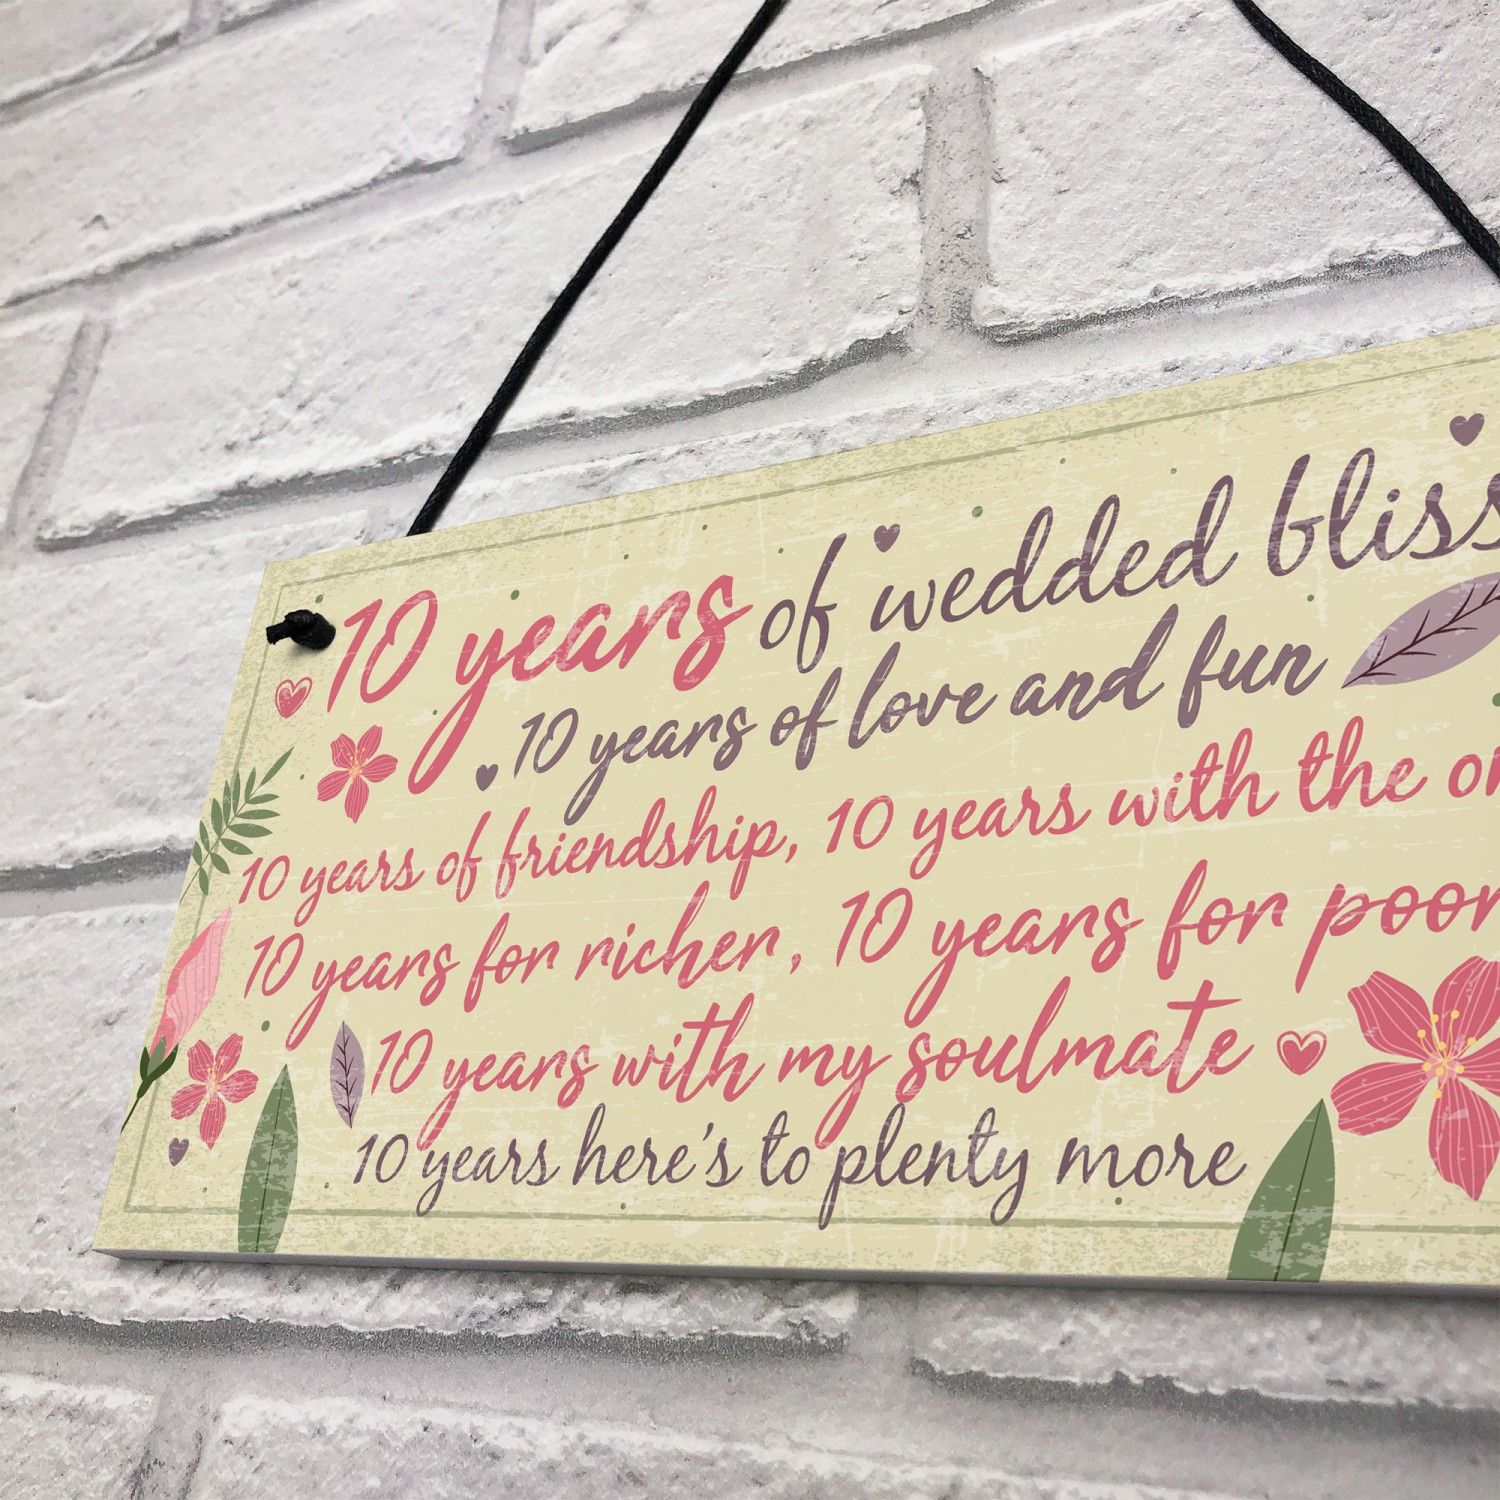 10th Wedding Anniversary Gift For Husband: 10th Wedding Anniversary Card Gift For Husband Wife Ten Year